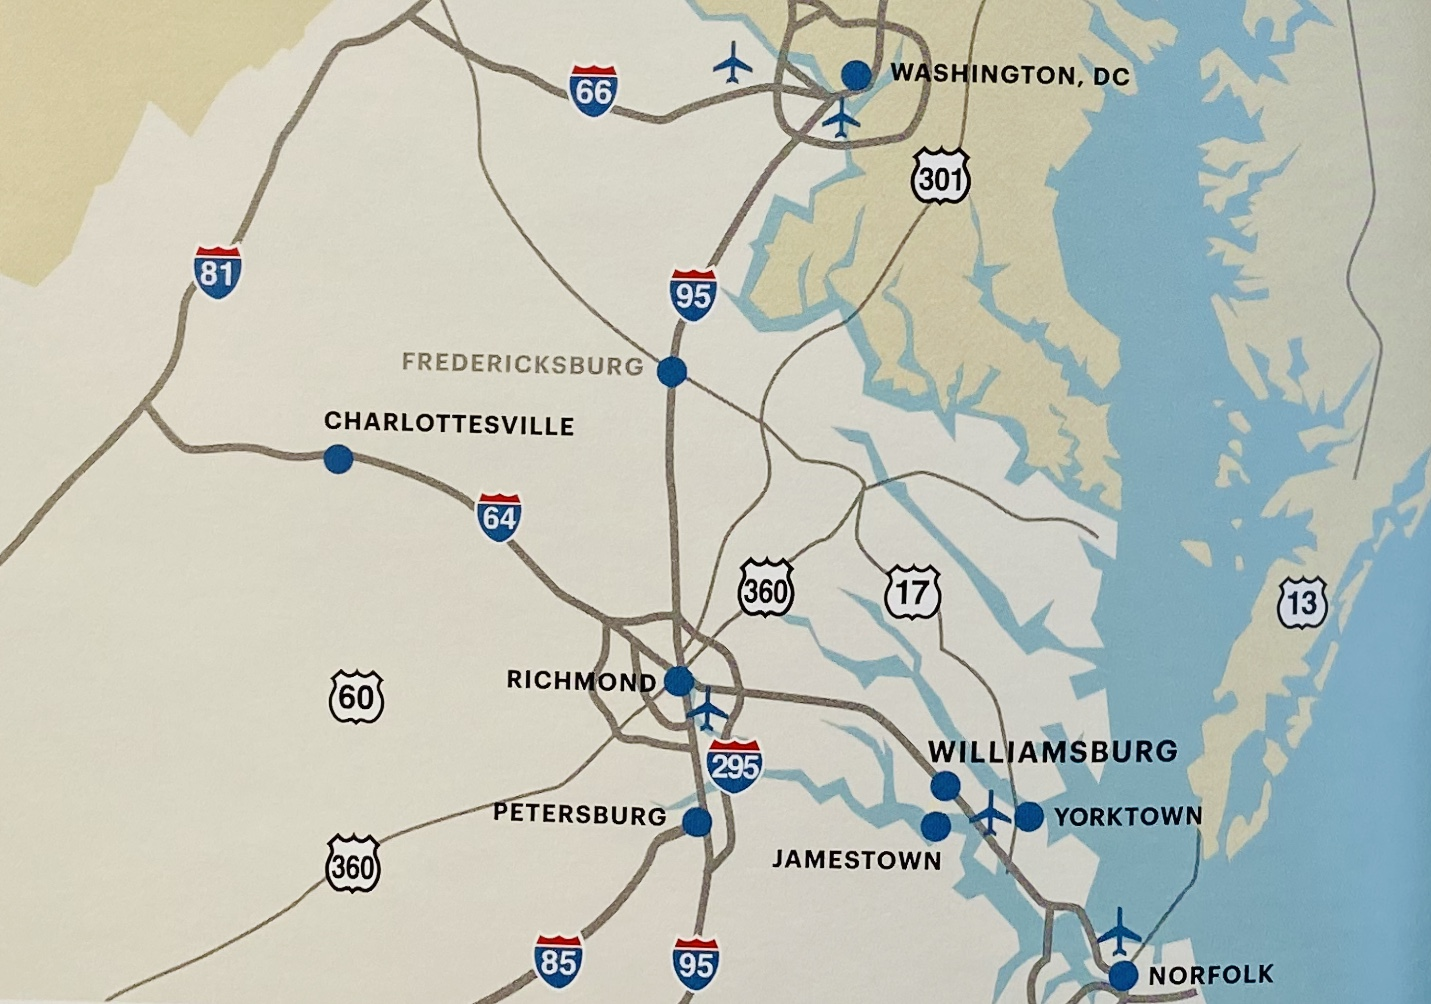 A map from The Guide to Colonial Williamsburg shows the proximity between Washington DC and Williamsburg, VA.